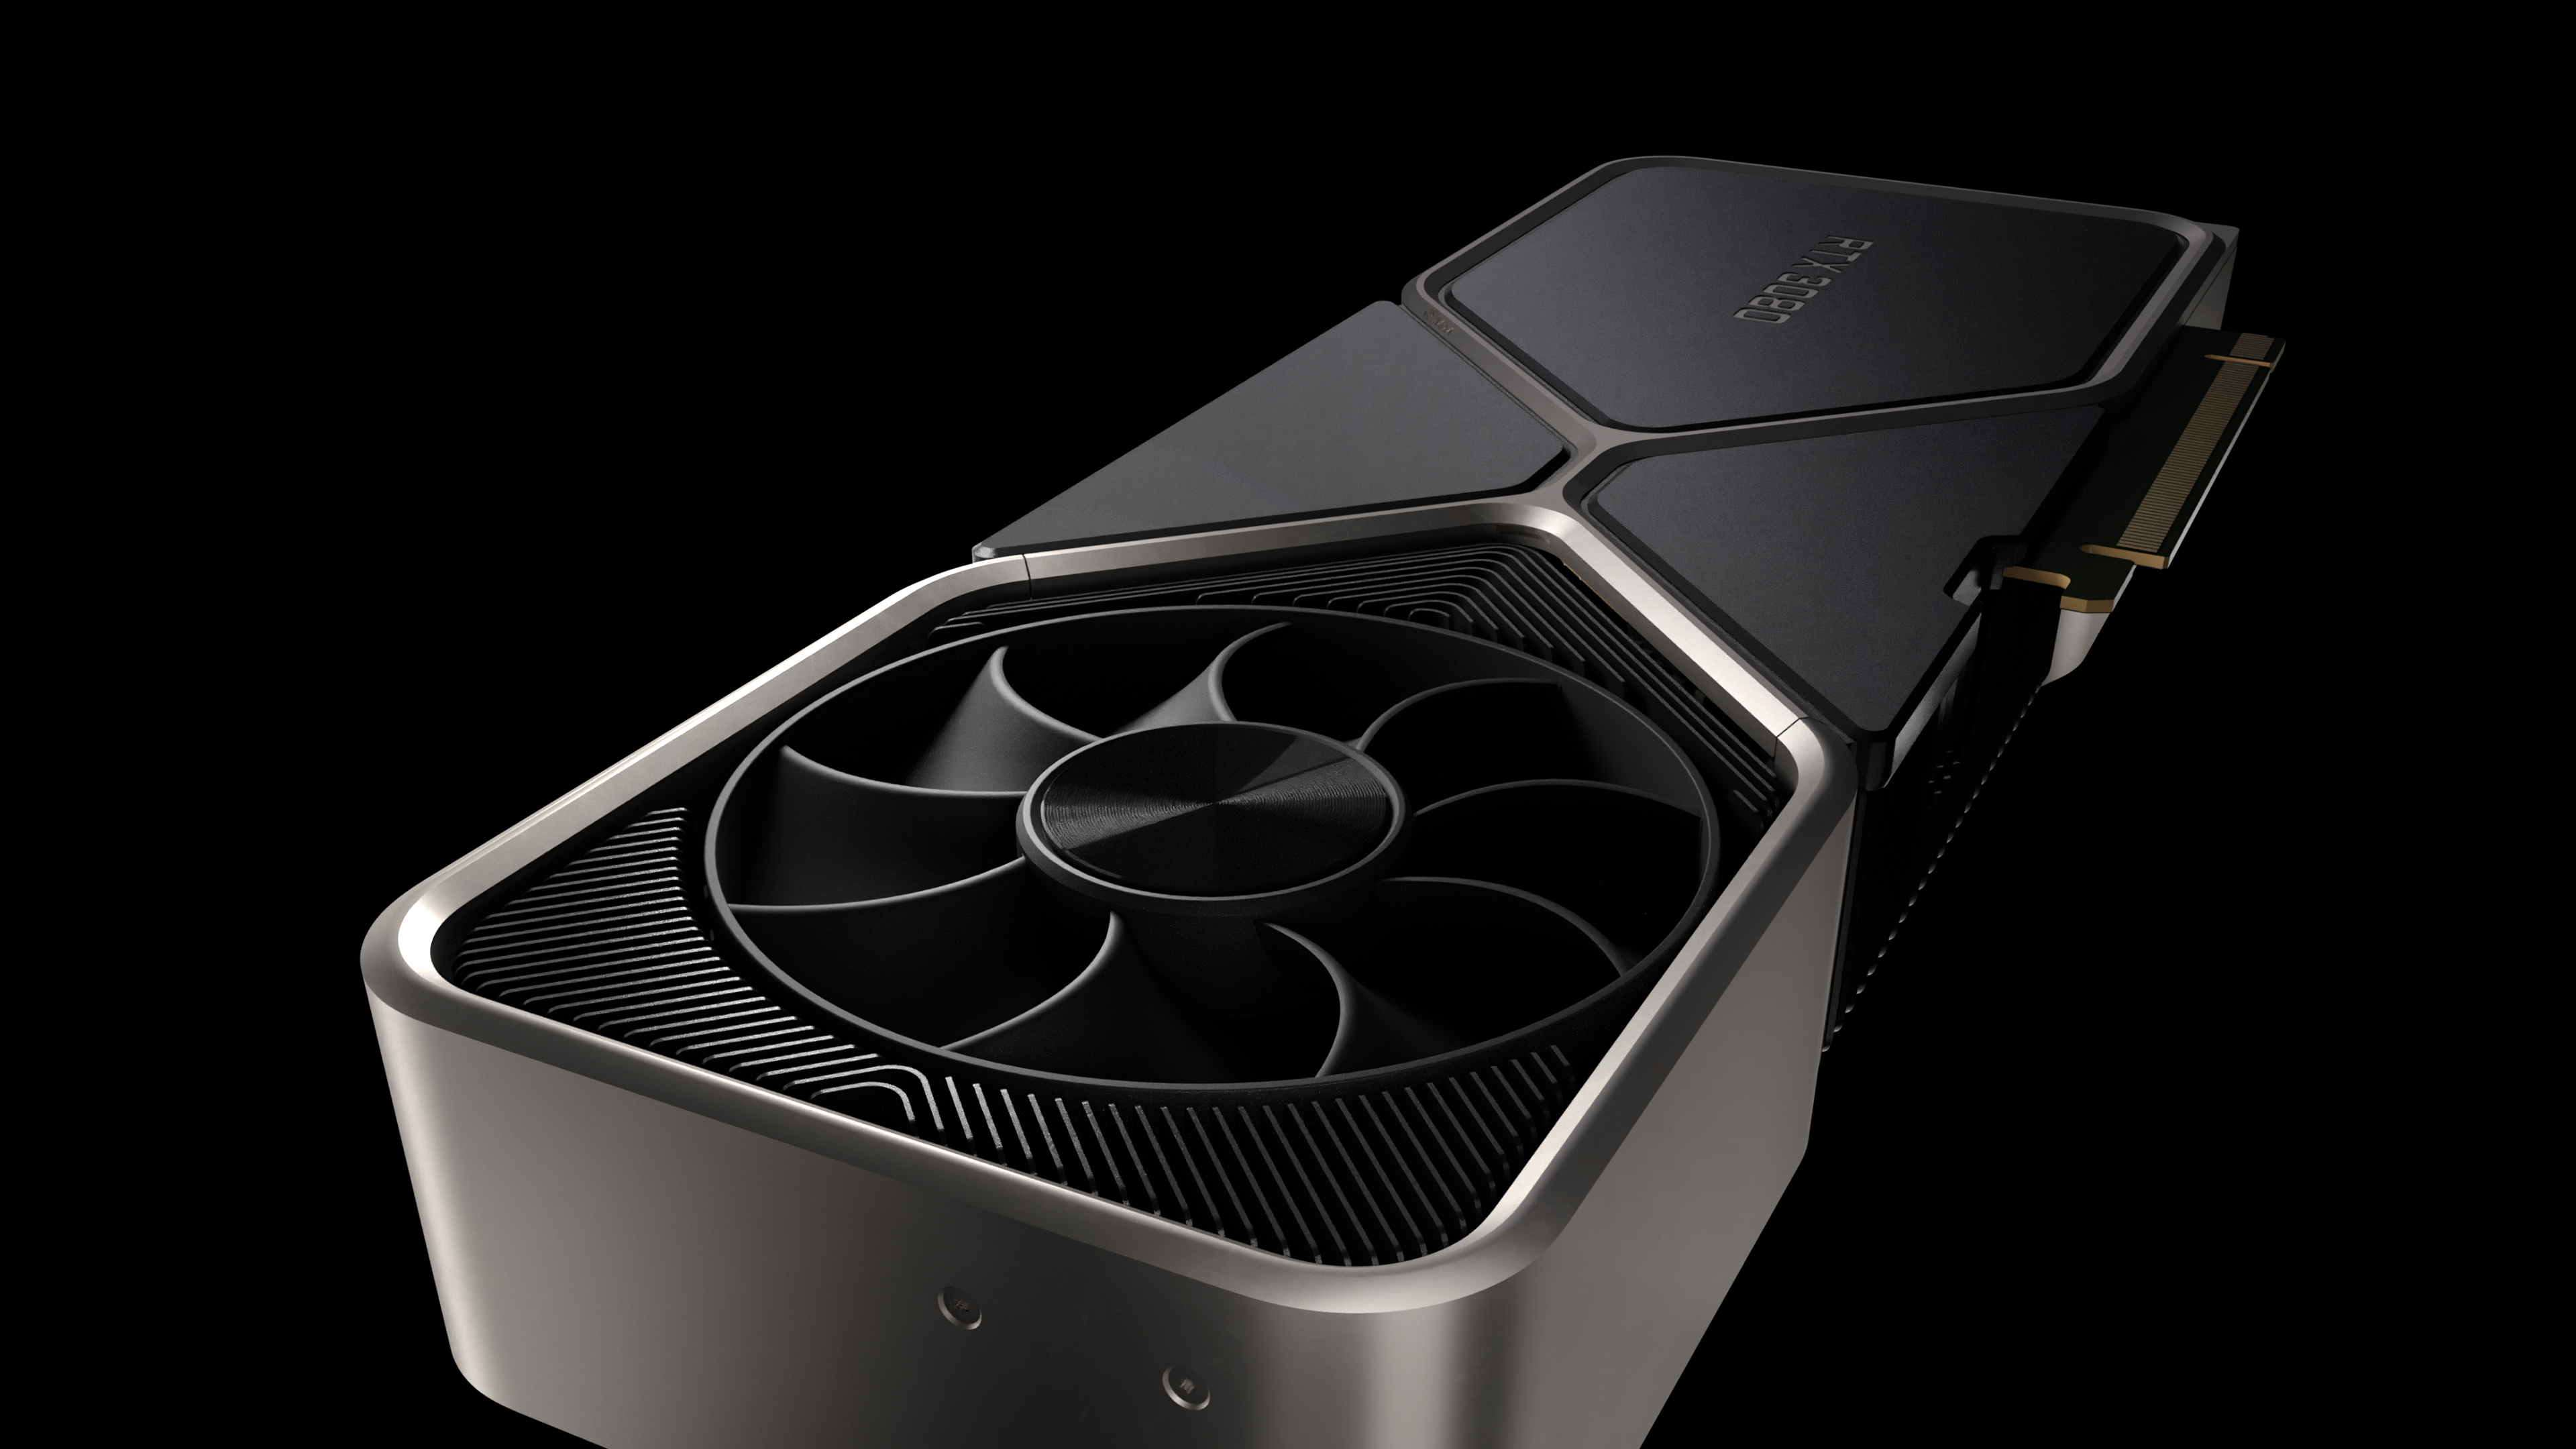 The Geforce Rtx 3080 Could Ignite Another Cryptomining Frenzy Tom S Hardware Find out more hashrate, consumption, difficulty. the geforce rtx 3080 could ignite